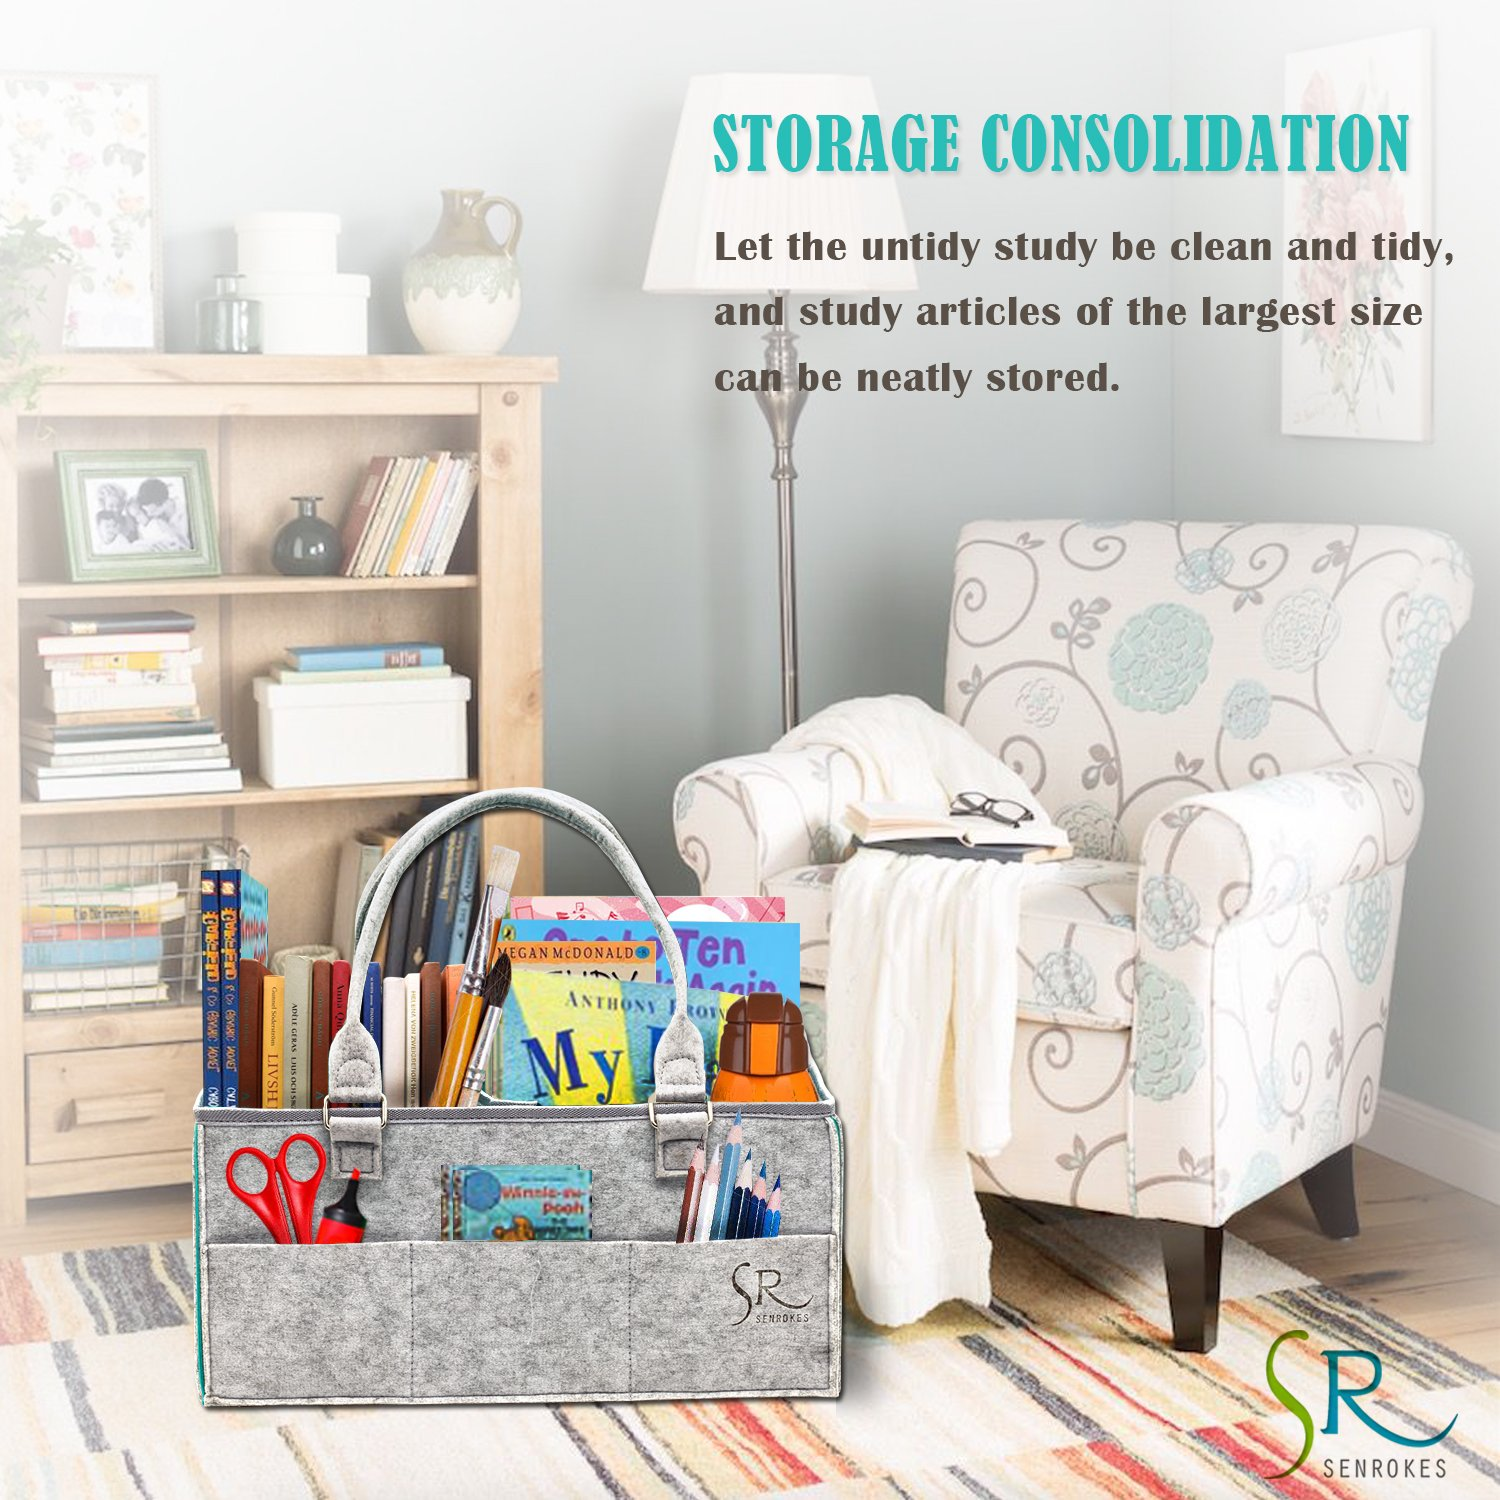 Car and Travel. Senrokes US Senrokes Baby Diaper Caddy Organizer Wipes and Toys to Household Grey Nursery Storage Portable Diaper Caddy Baby Shower Gift Baskets with Changeable Insert for Baby Diapers